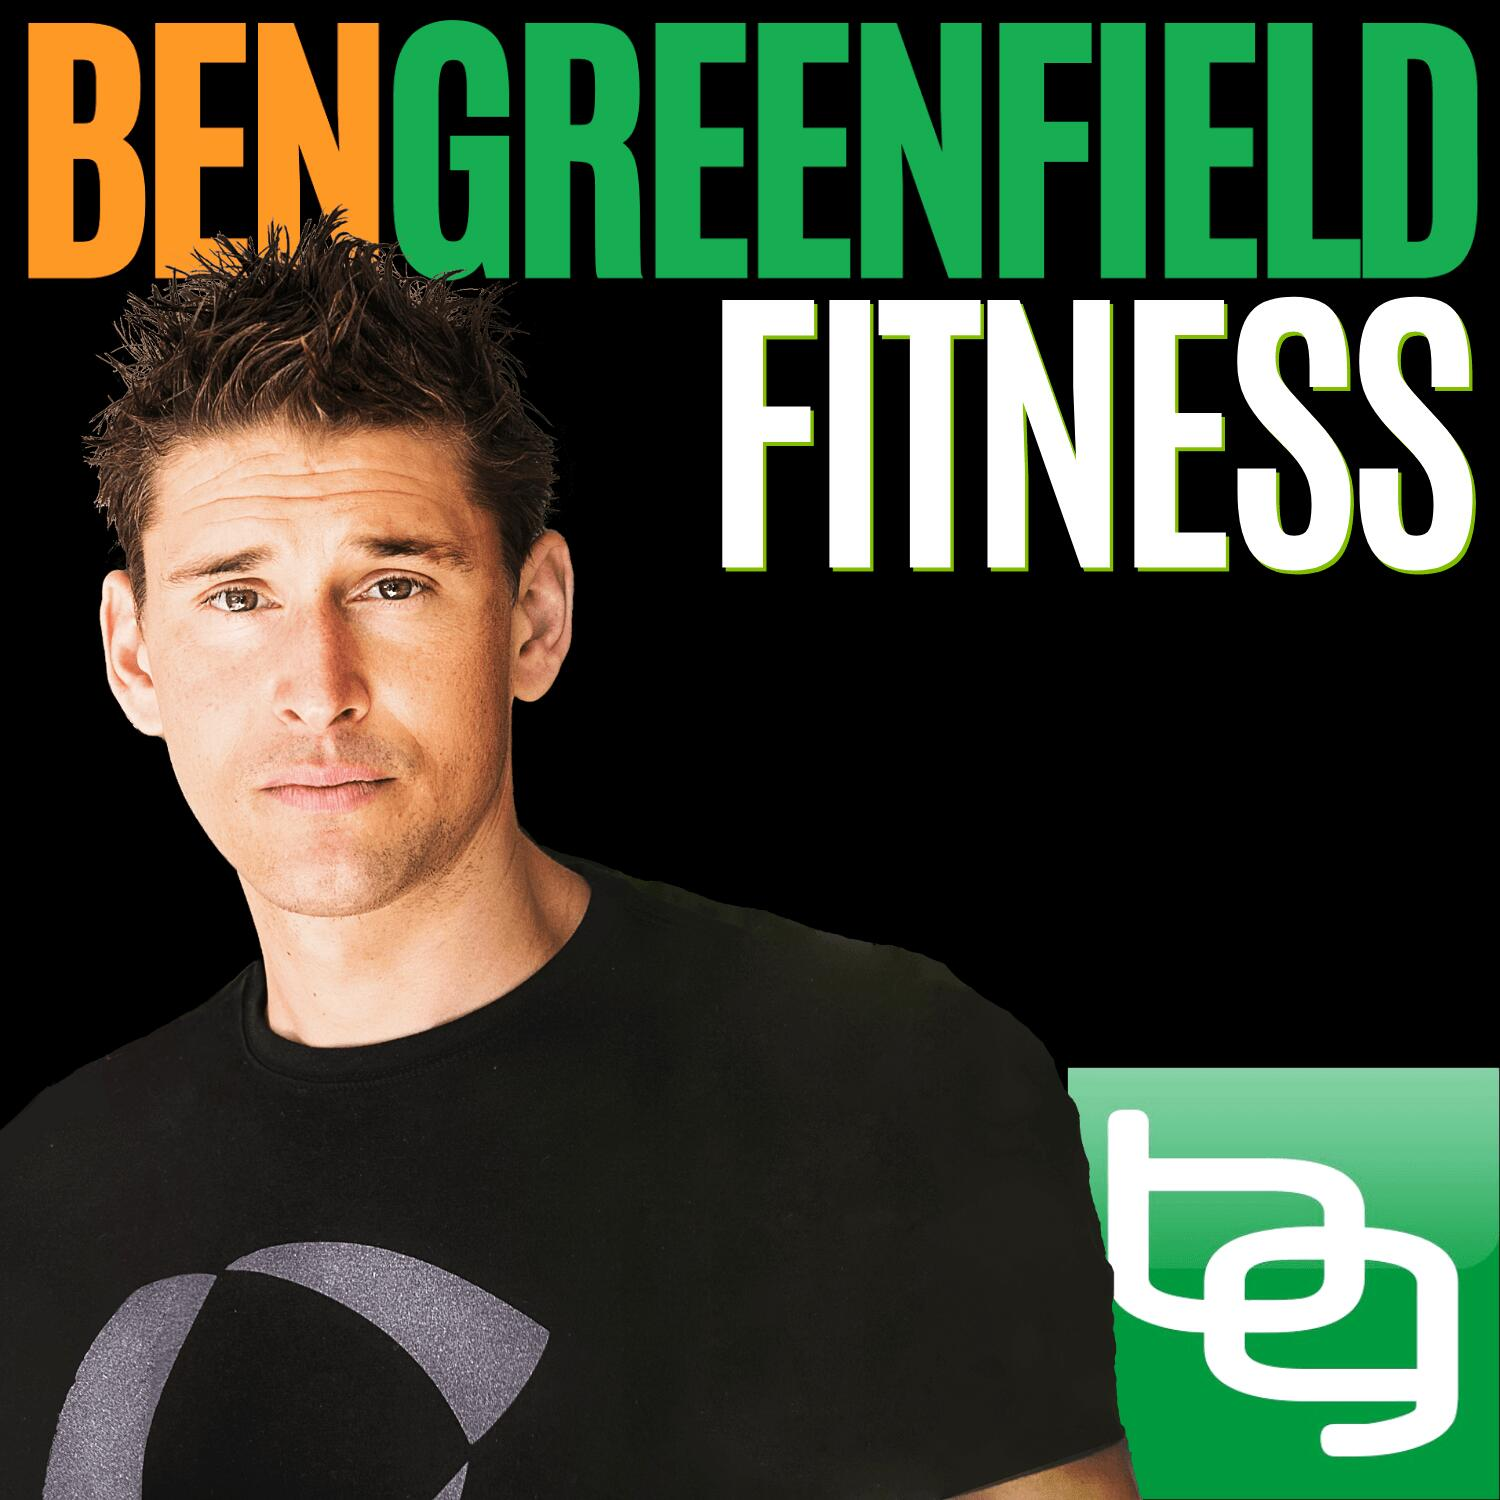 Listen to the Ben Greenfield Fitness Episode - How To Fix